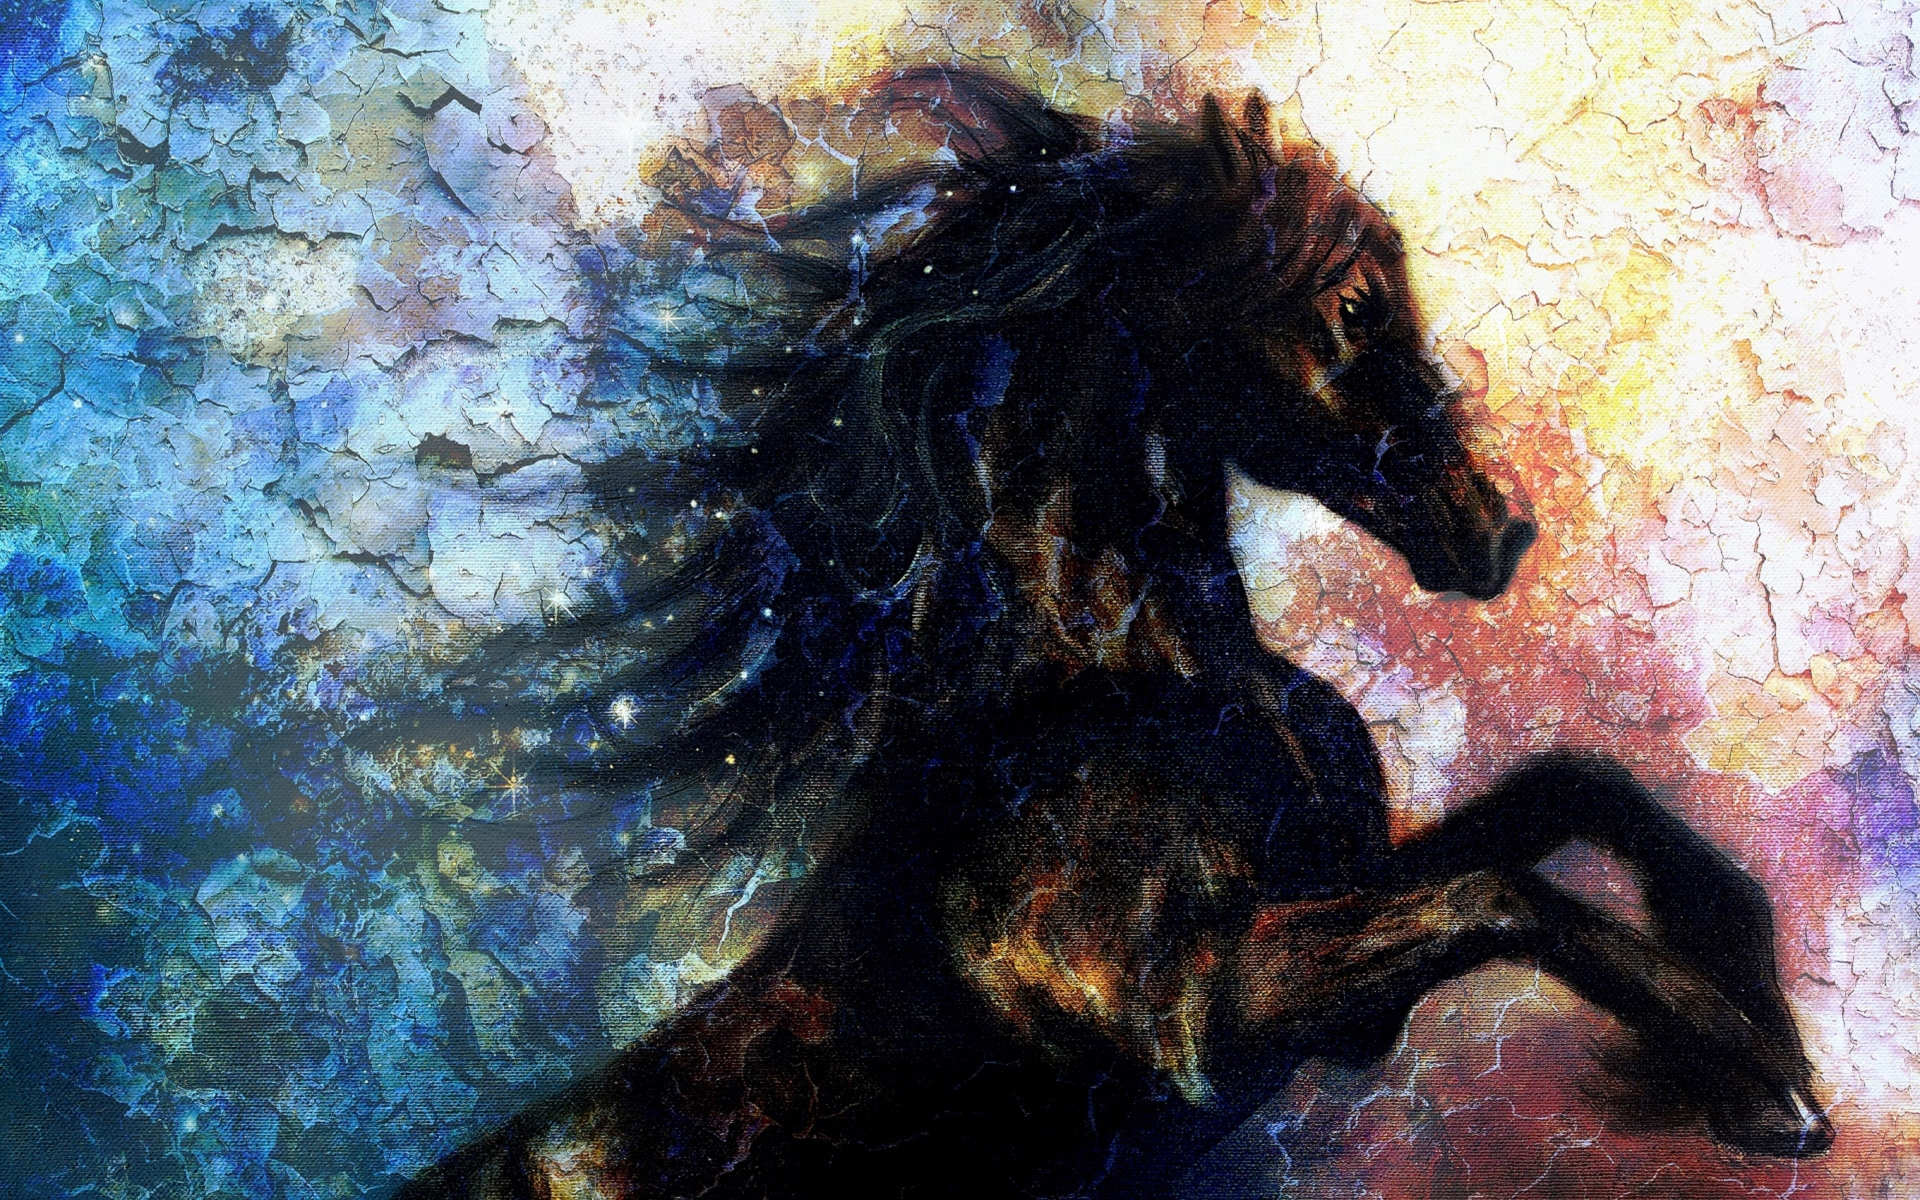 1920x1200 Pretty Black Horse Wall Art Desktop Pc And Mac Wallpaper